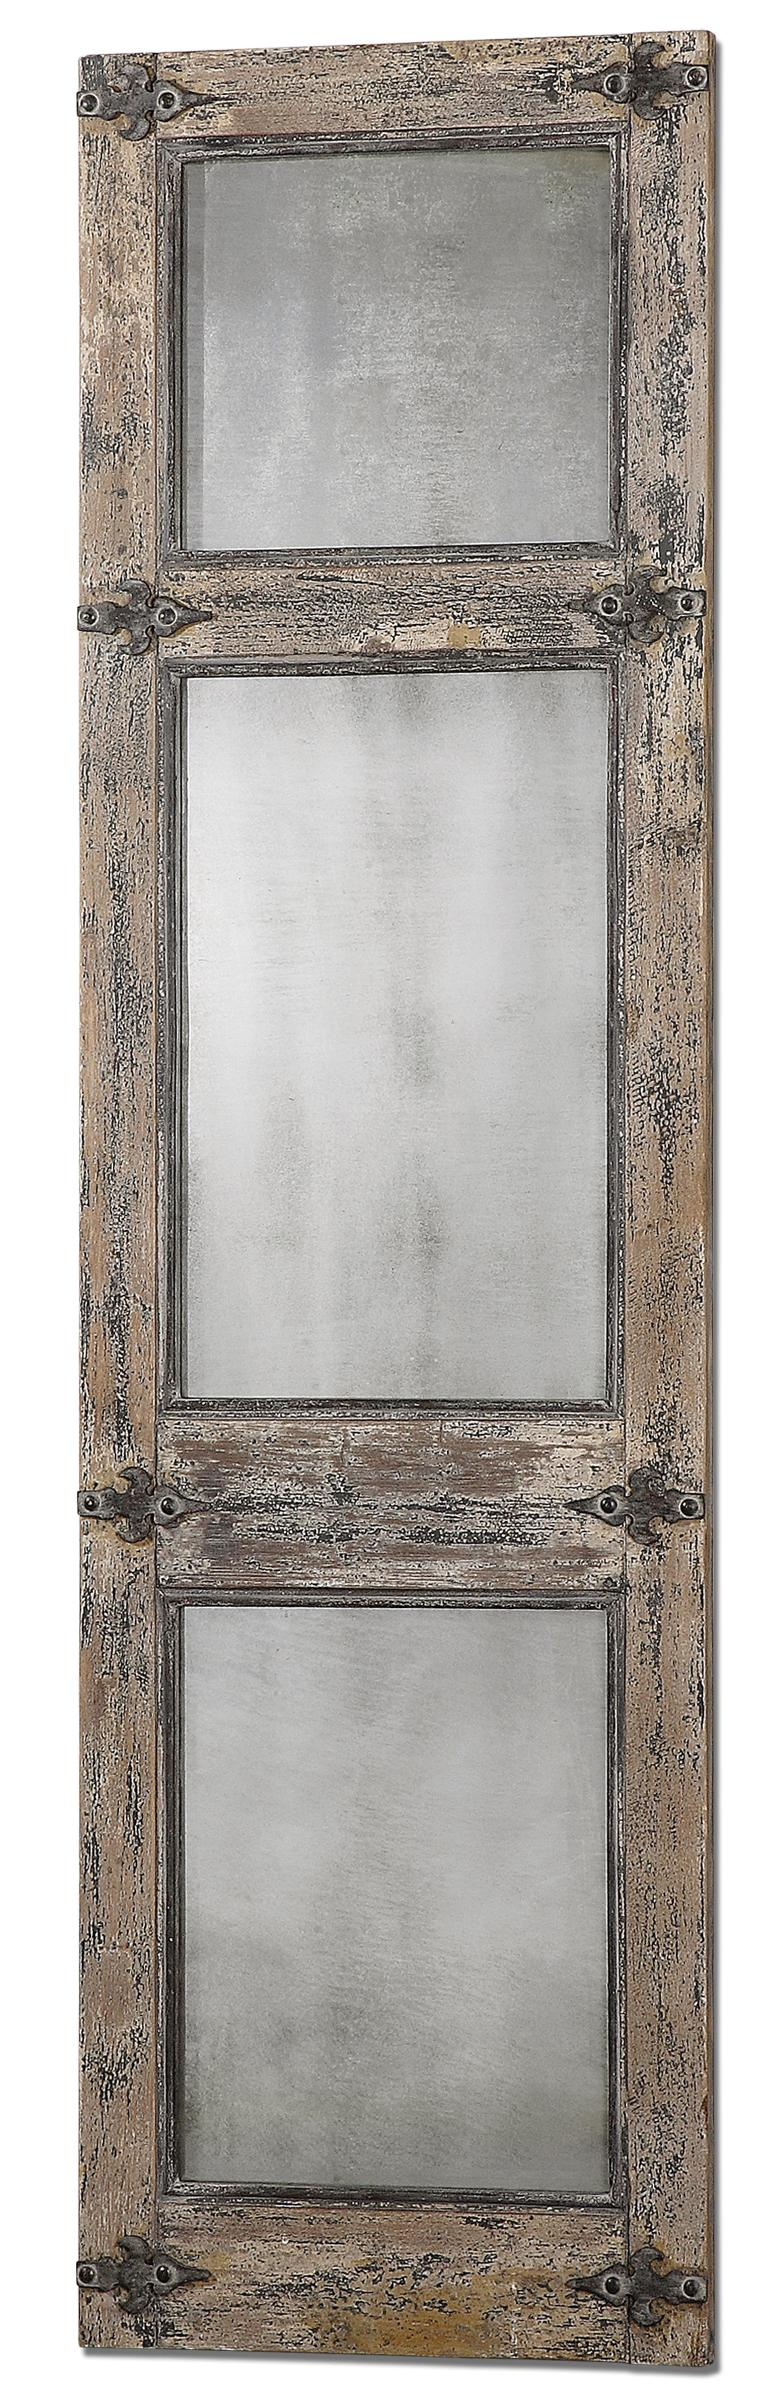 Uttermost Mirrors Saragano - Item Number: 13835